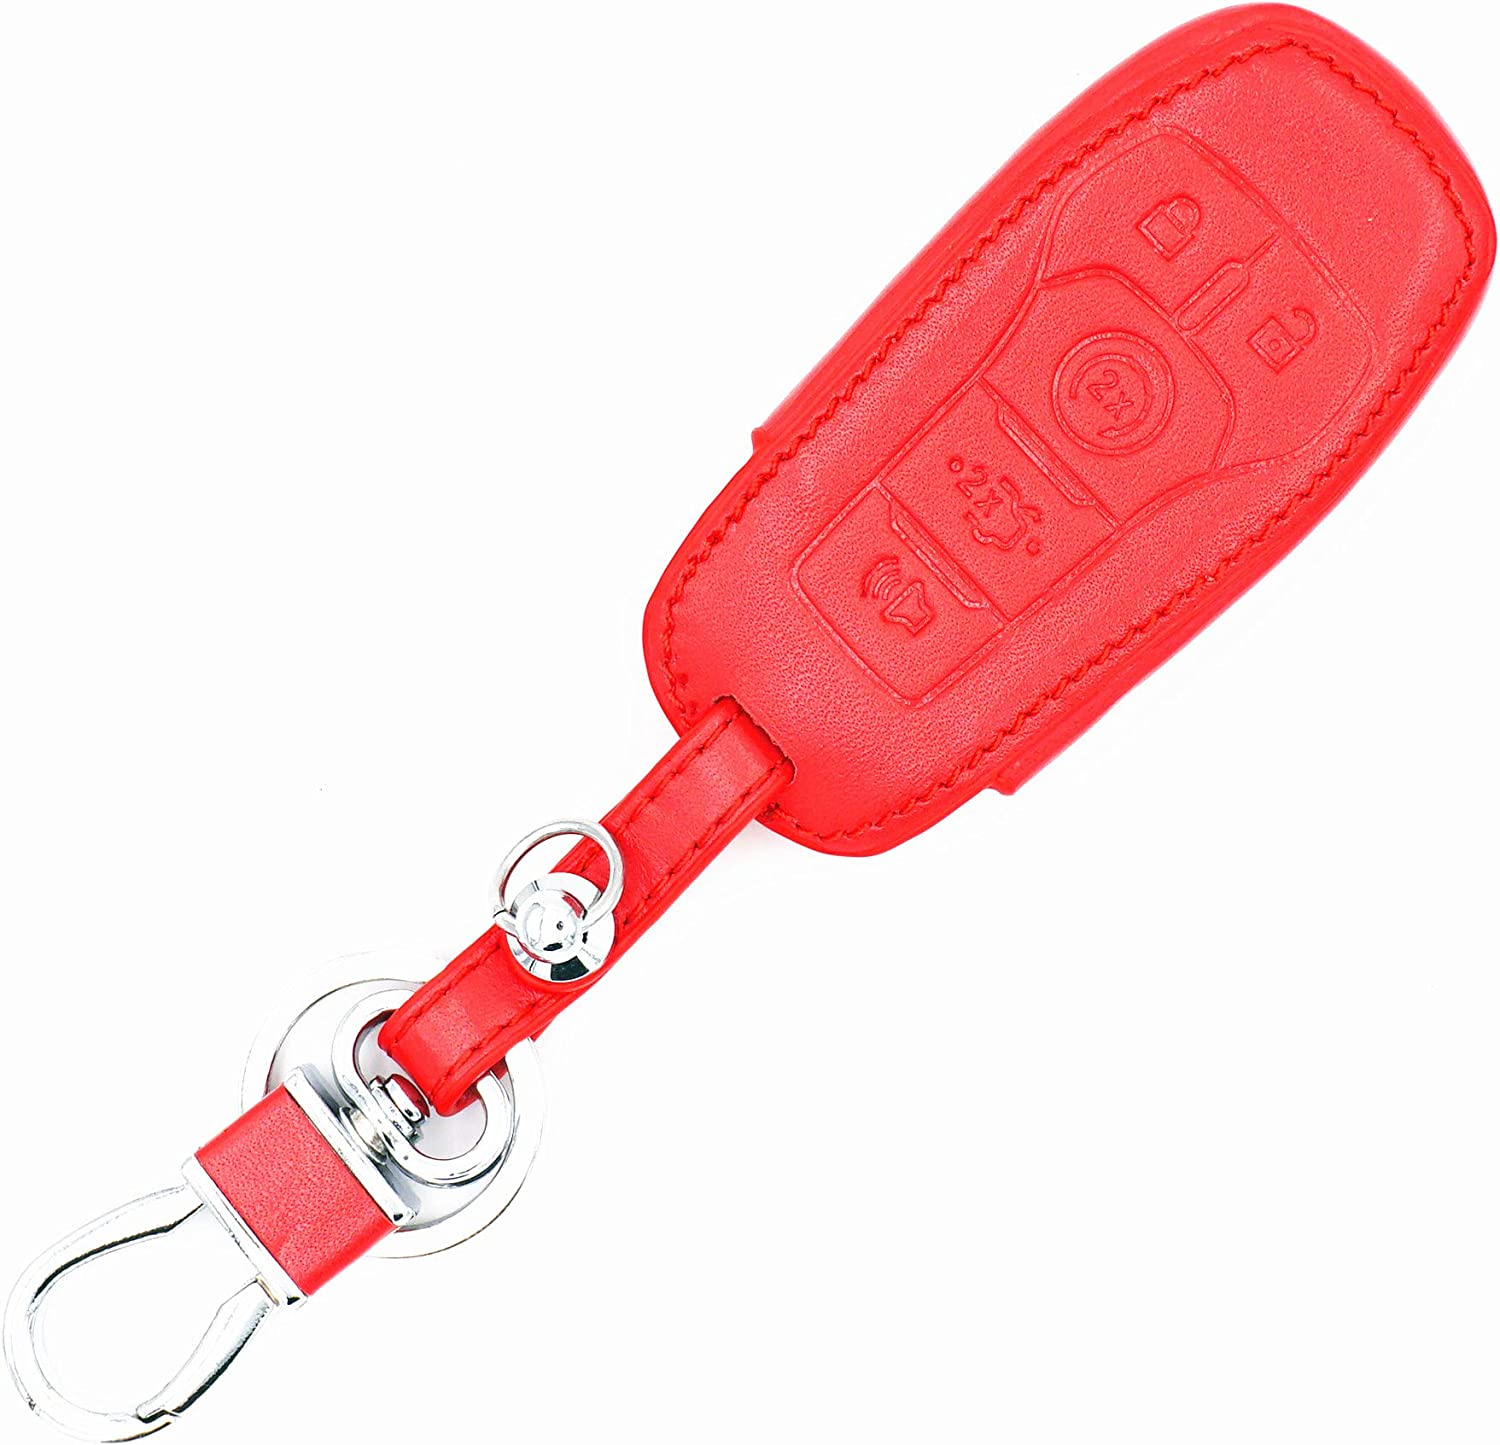 WFMJ Red Leather for Ford Fusion Mustang F-150 Fusion F-450 F-550 Super Duty Edge Explorer Lincoln MKZ MKC 5 Buttons Remote Smart Key Chain Cover Case Fob